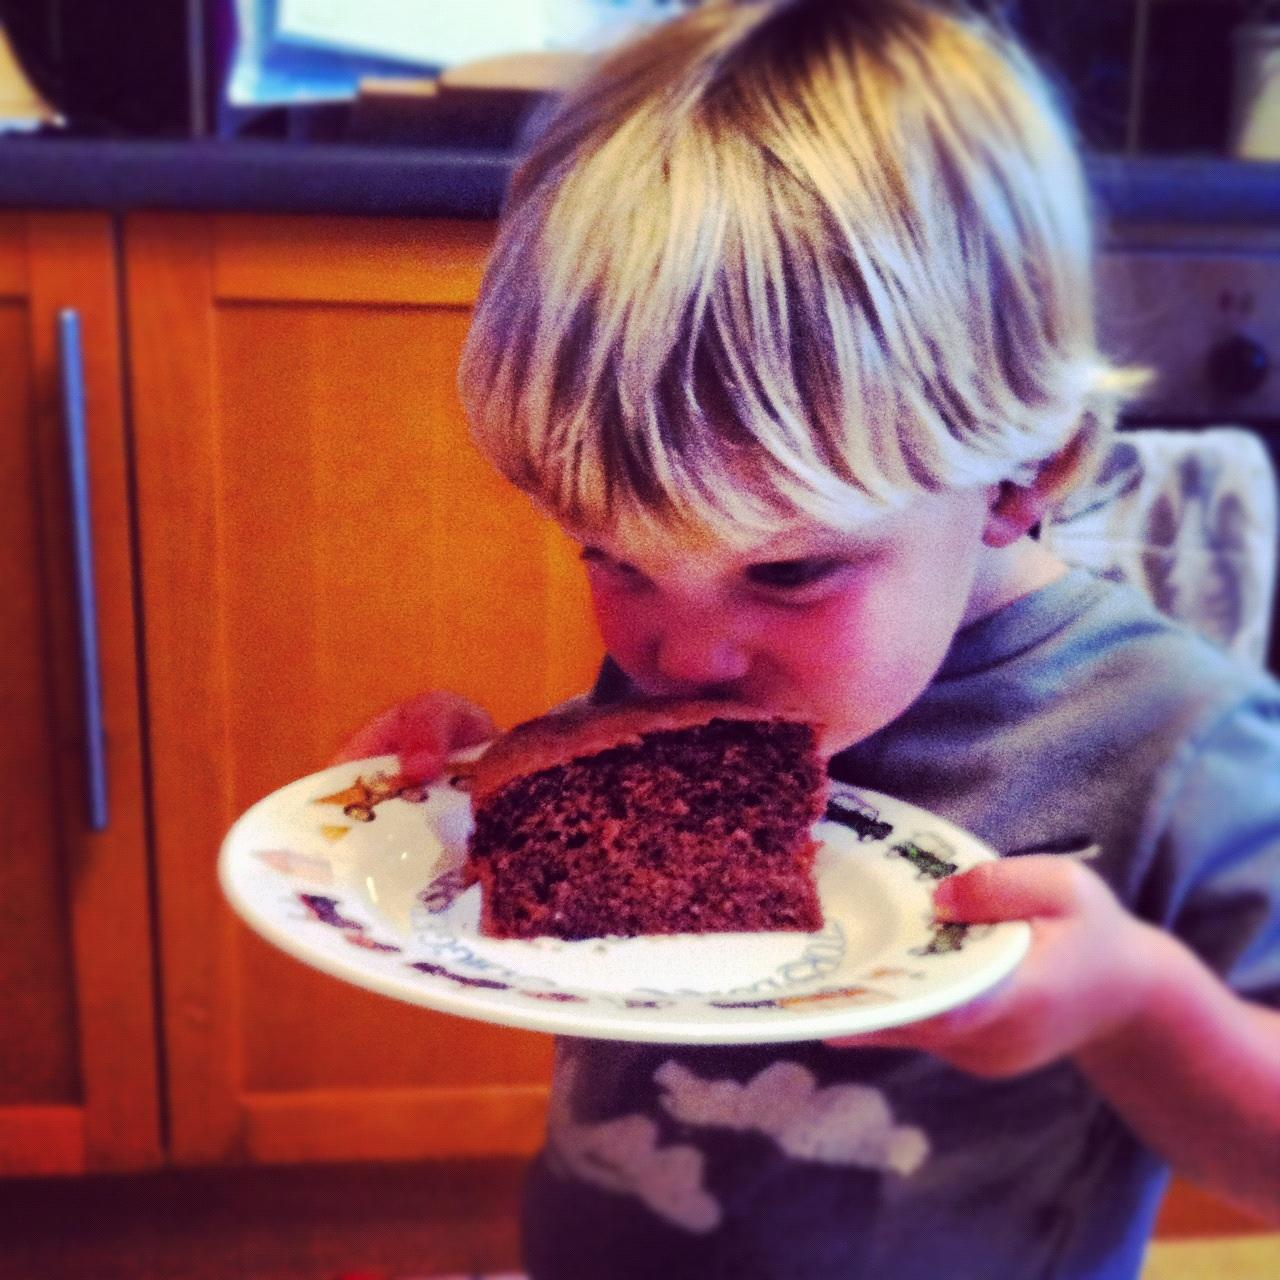 My son Jasper tucking into a piece of chocolate cake, he's showing no signs of eating difficulties!